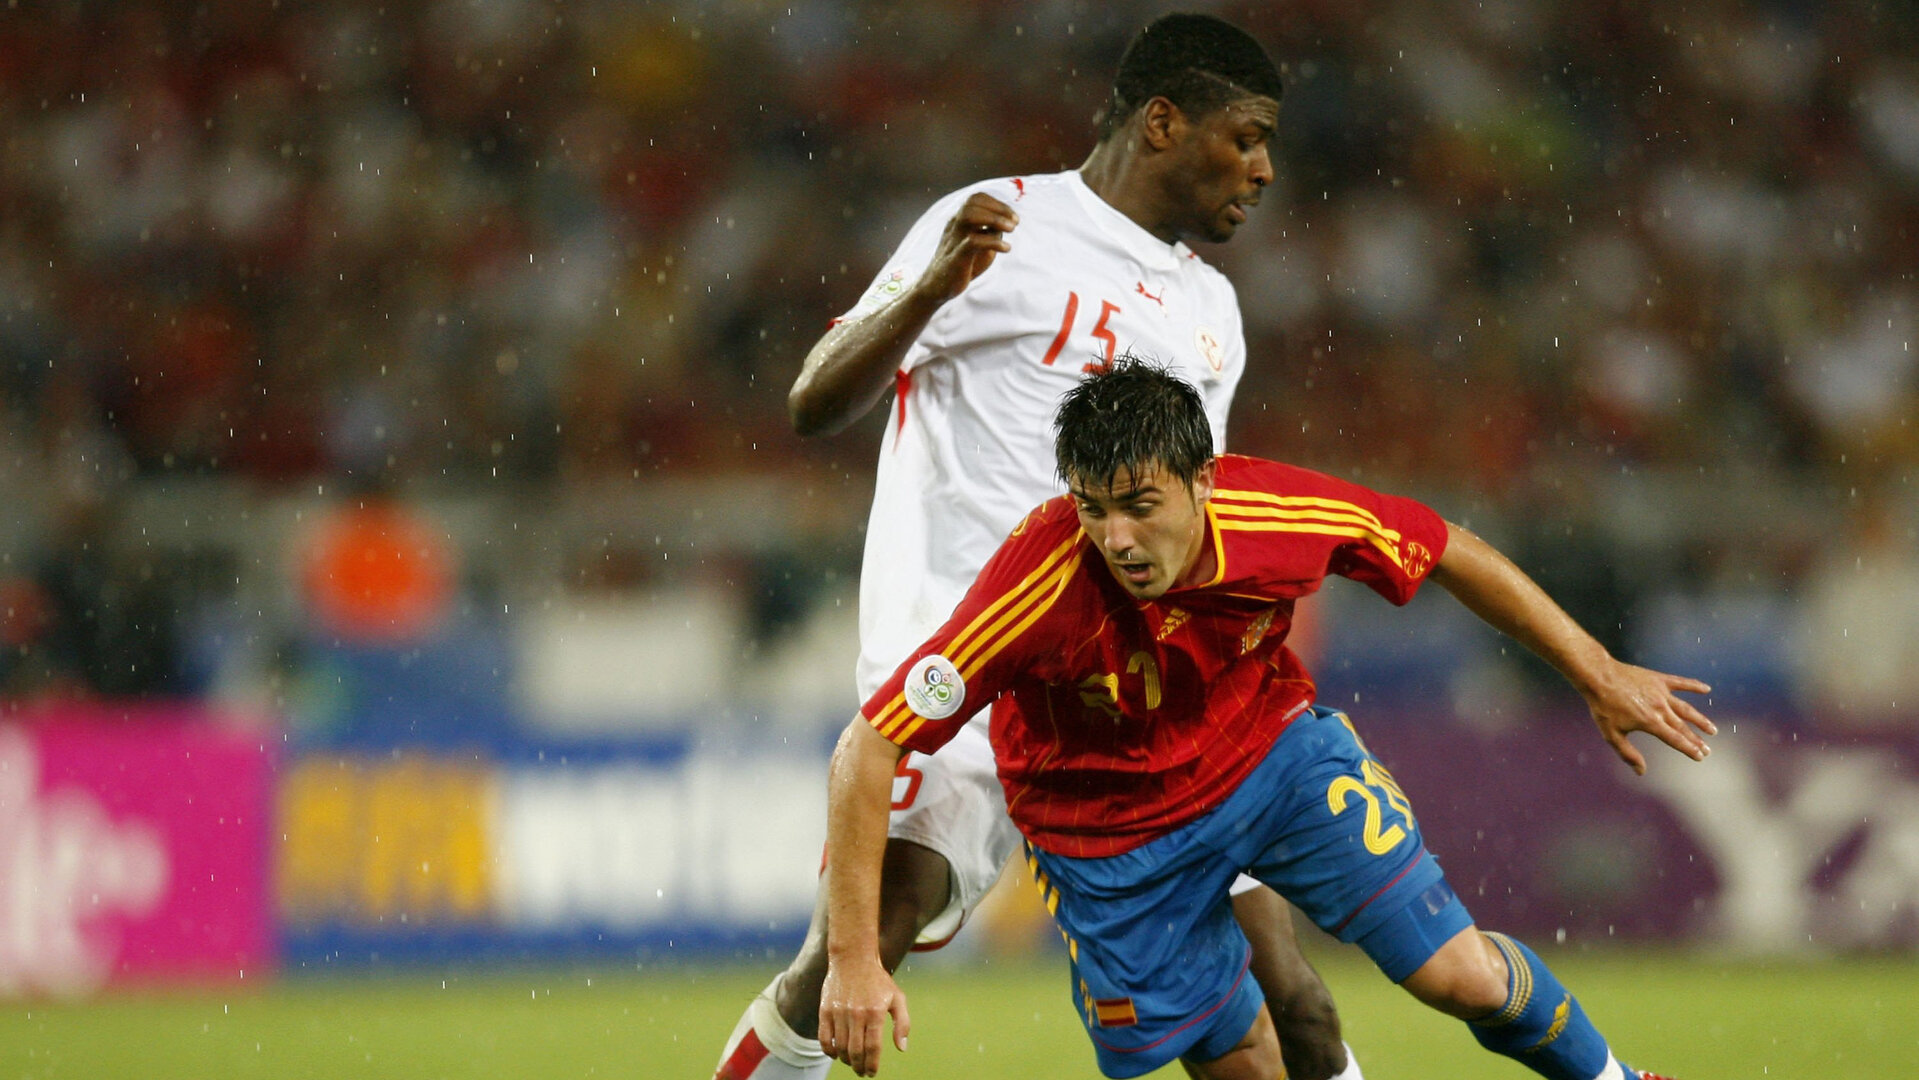 STUTTGART, GERMANY - JUNE 19:  David Villa of Spain is brought down by Radhi Jaidi of Tunisia during the FIFA World Cup Germany 2006 Group H match between Spain and Tunisia at the Gottlieb-Daimler Stadium on June 19, 2006 in Stuttgart, Germany.   (Photo by Michael Steele/Getty Images)